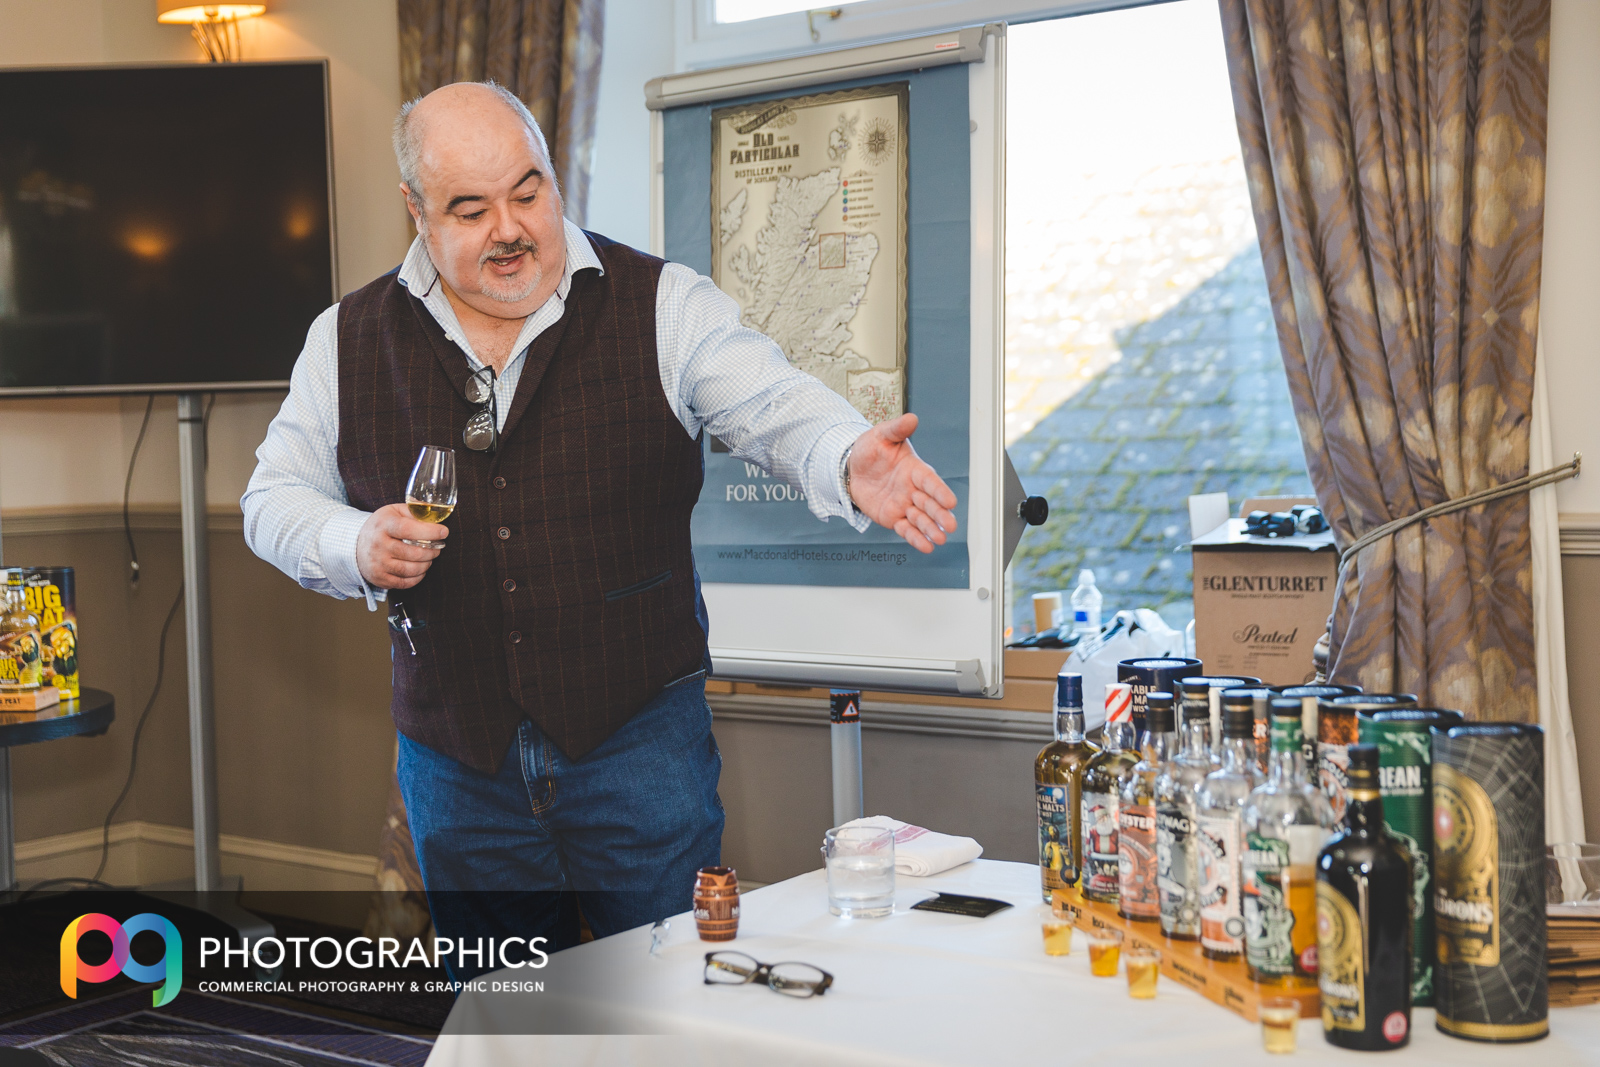 whisky-tasting-event-photography-glasgow-edinburgh-scotland-3.jpg